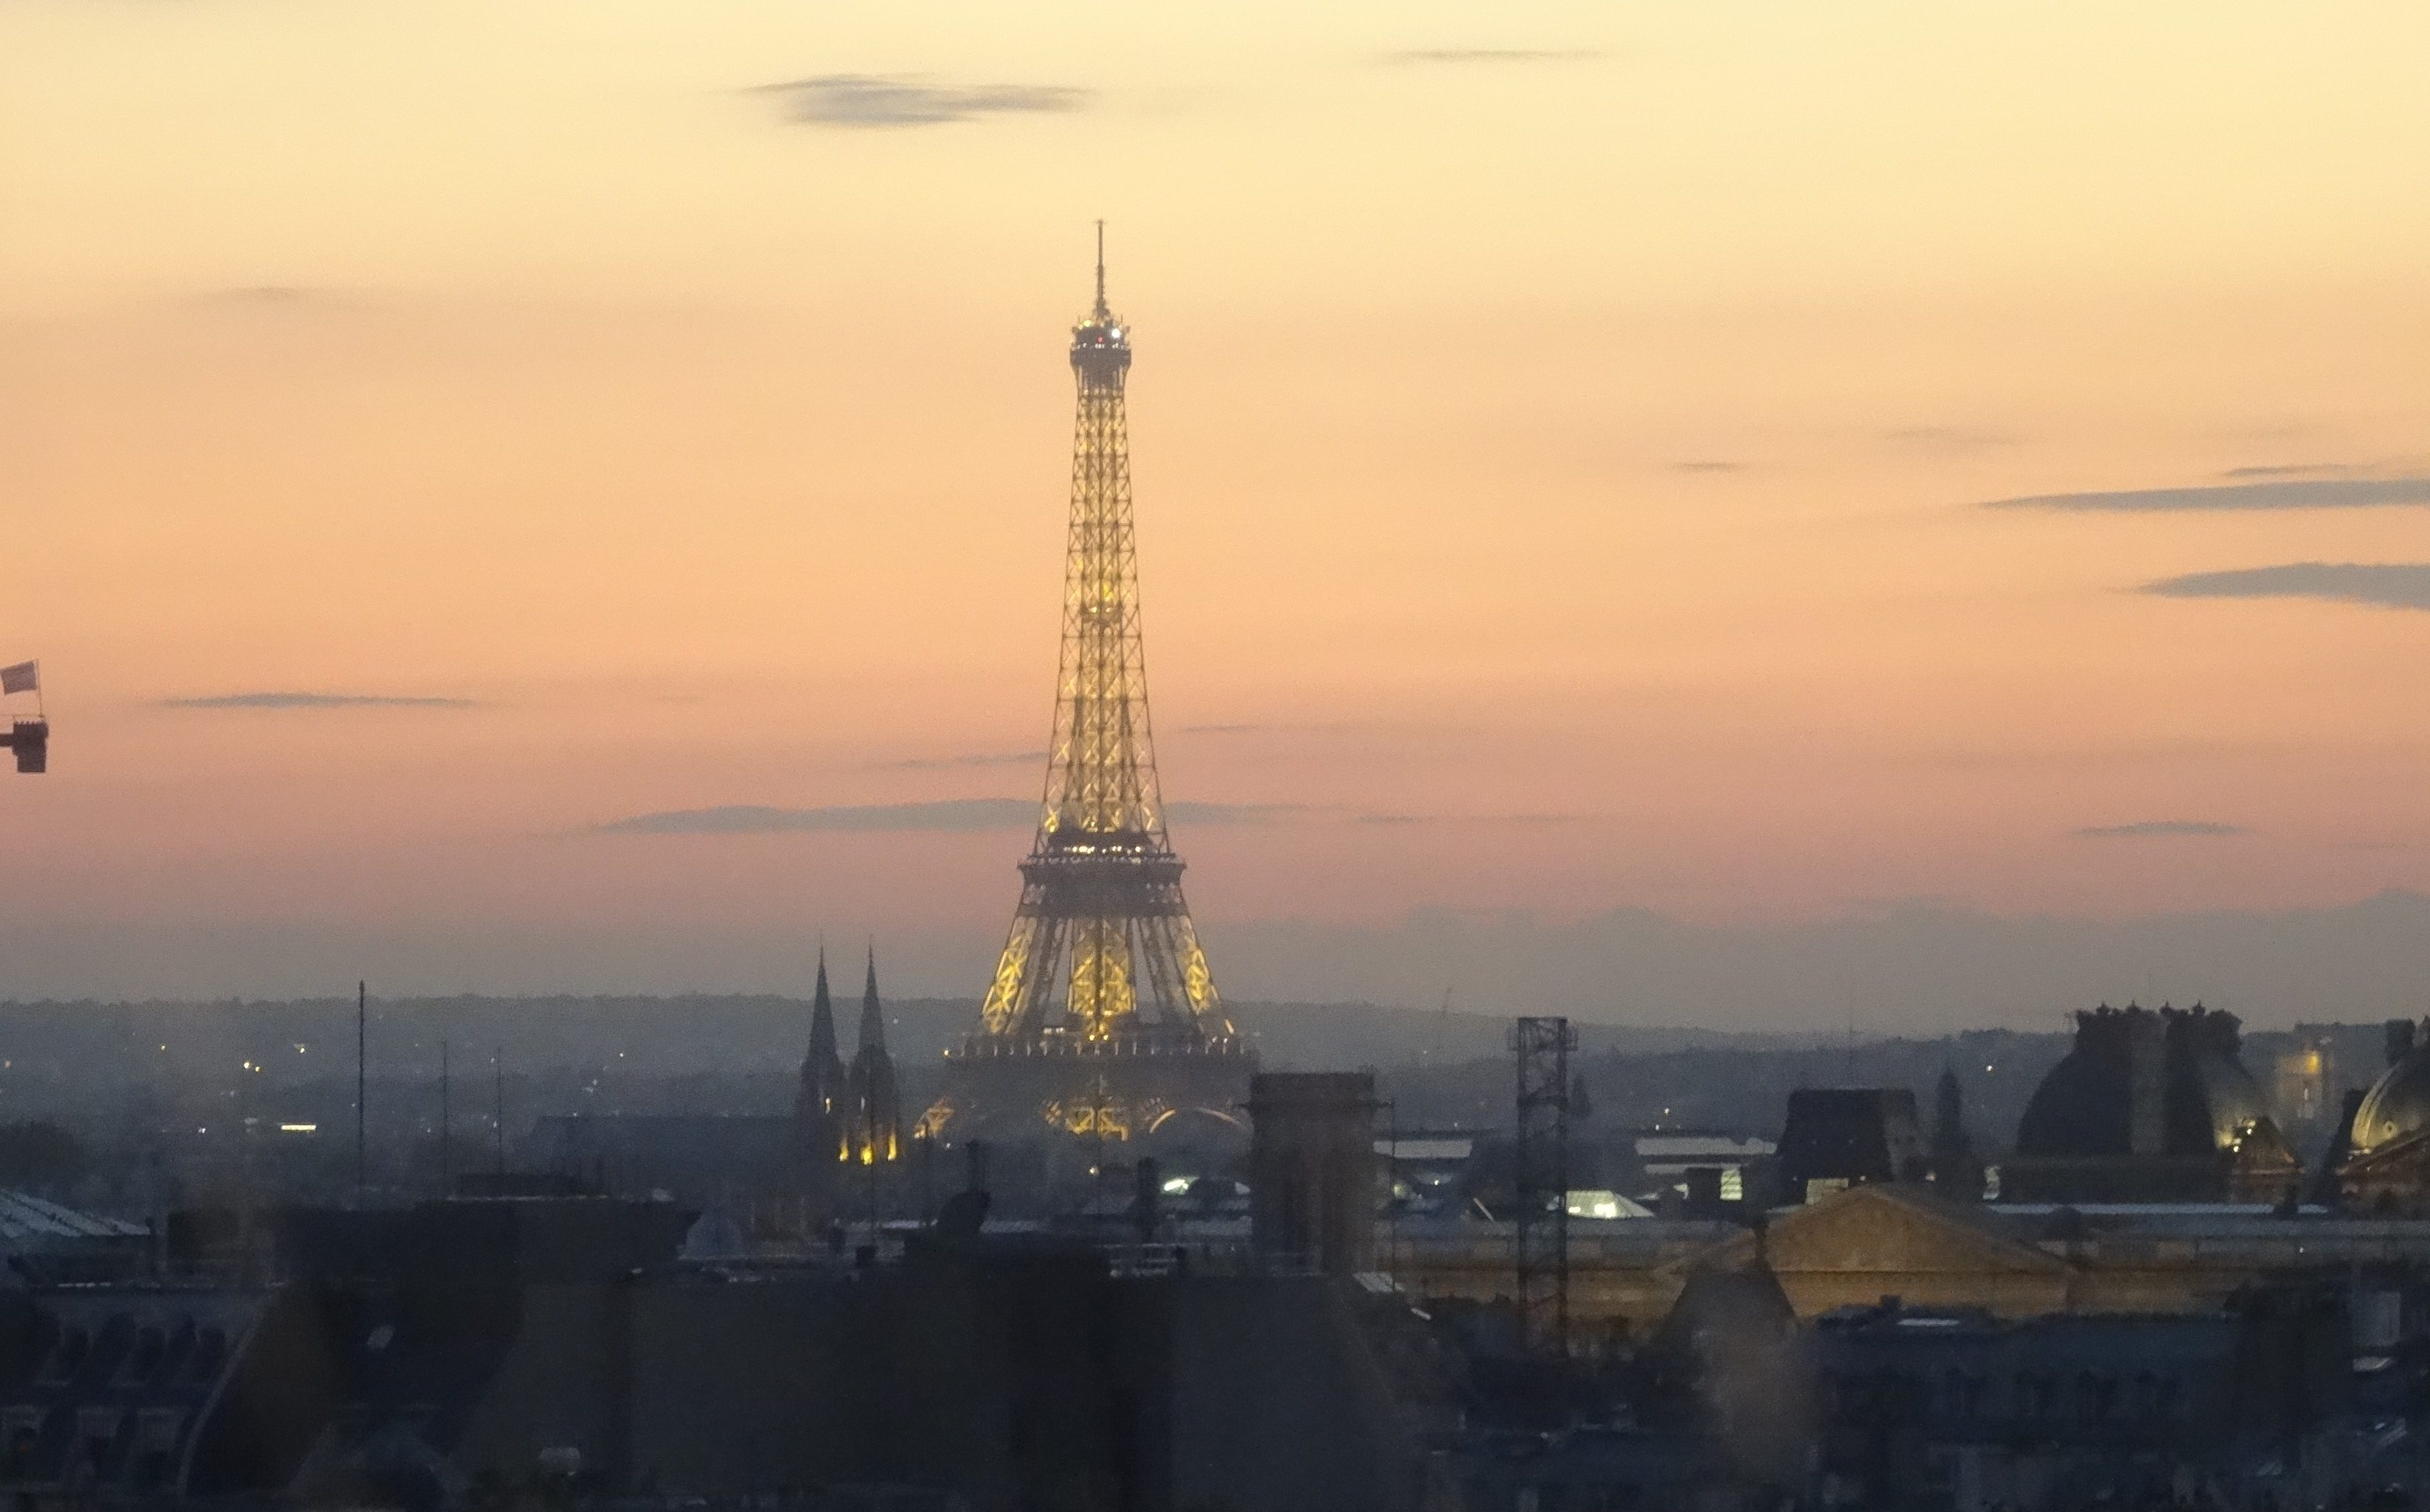 The Eiffel Tower at night. This iconic view of the tower from The Pompidue Center says it all. Paris is the city of lights. This was taken our last night in the City of Lights and is most poignent of all my photos.